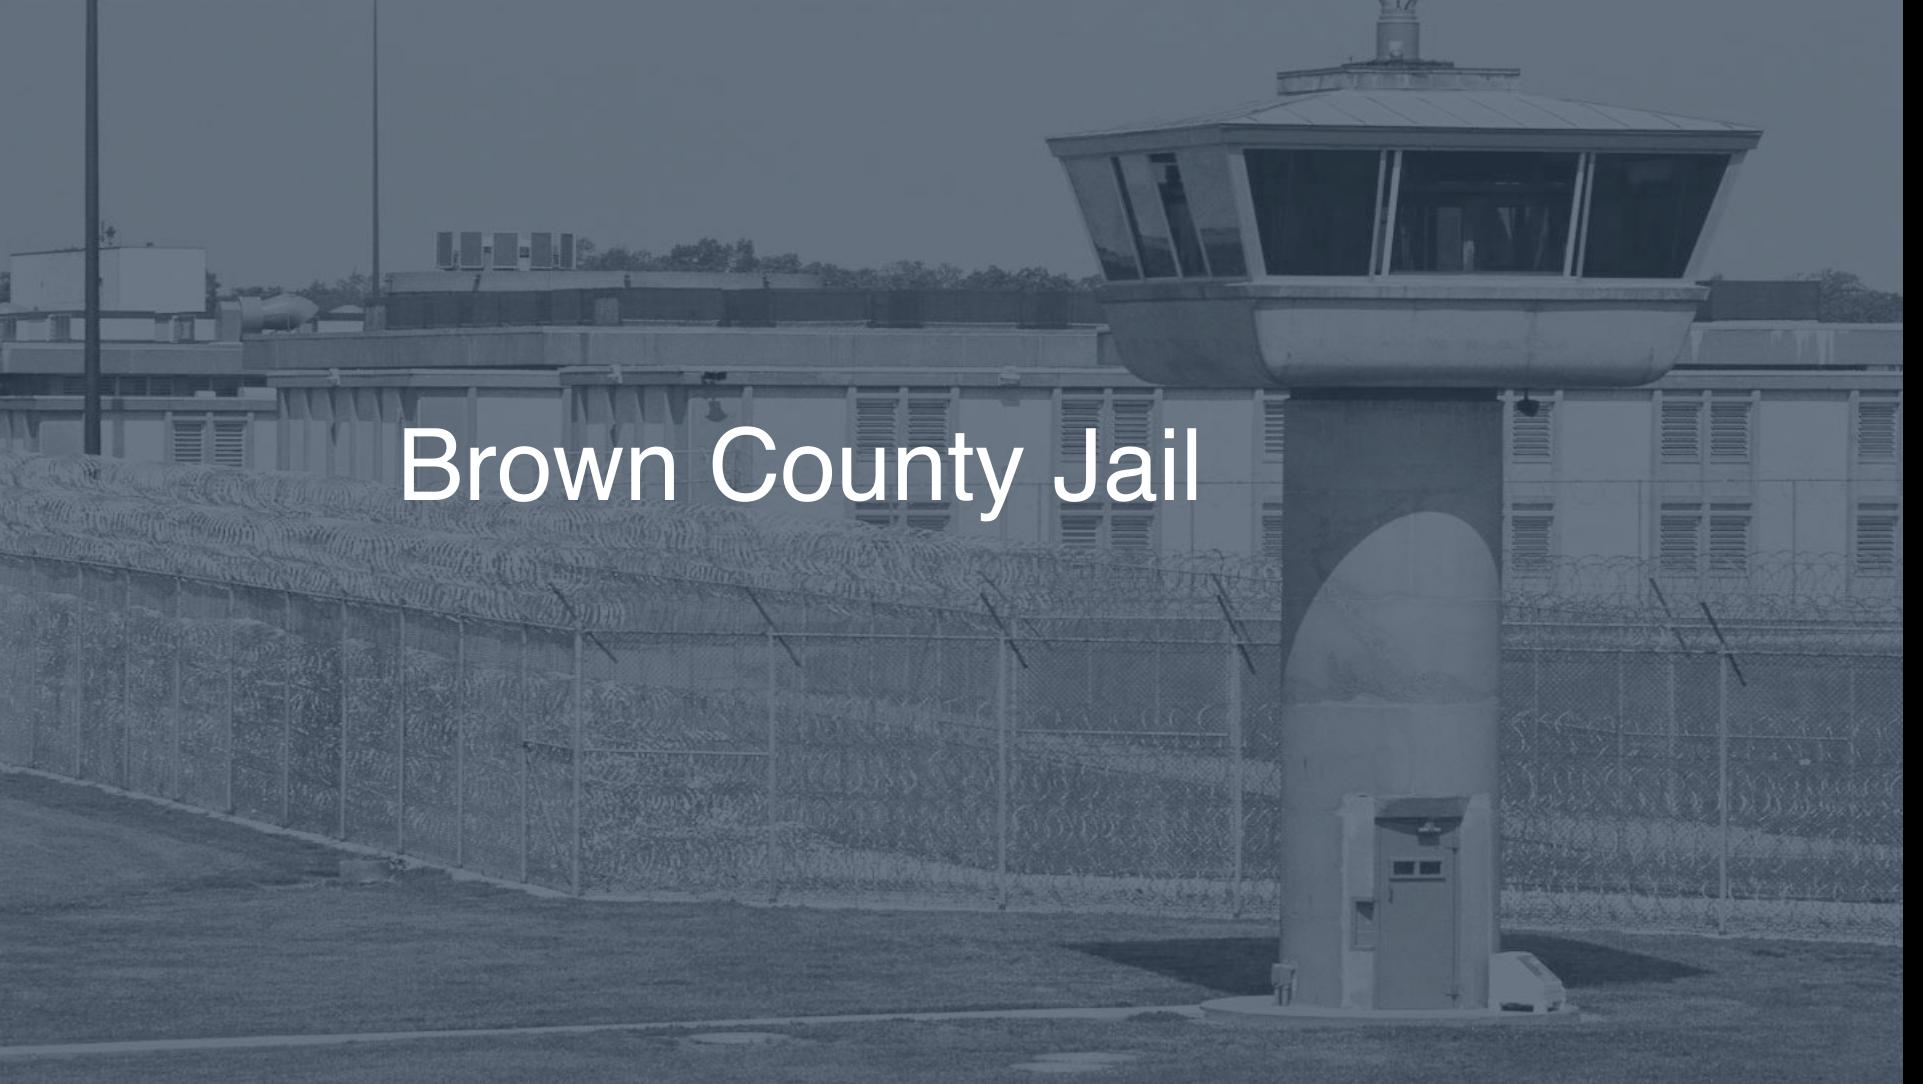 Brown County Jail correctional facility picture